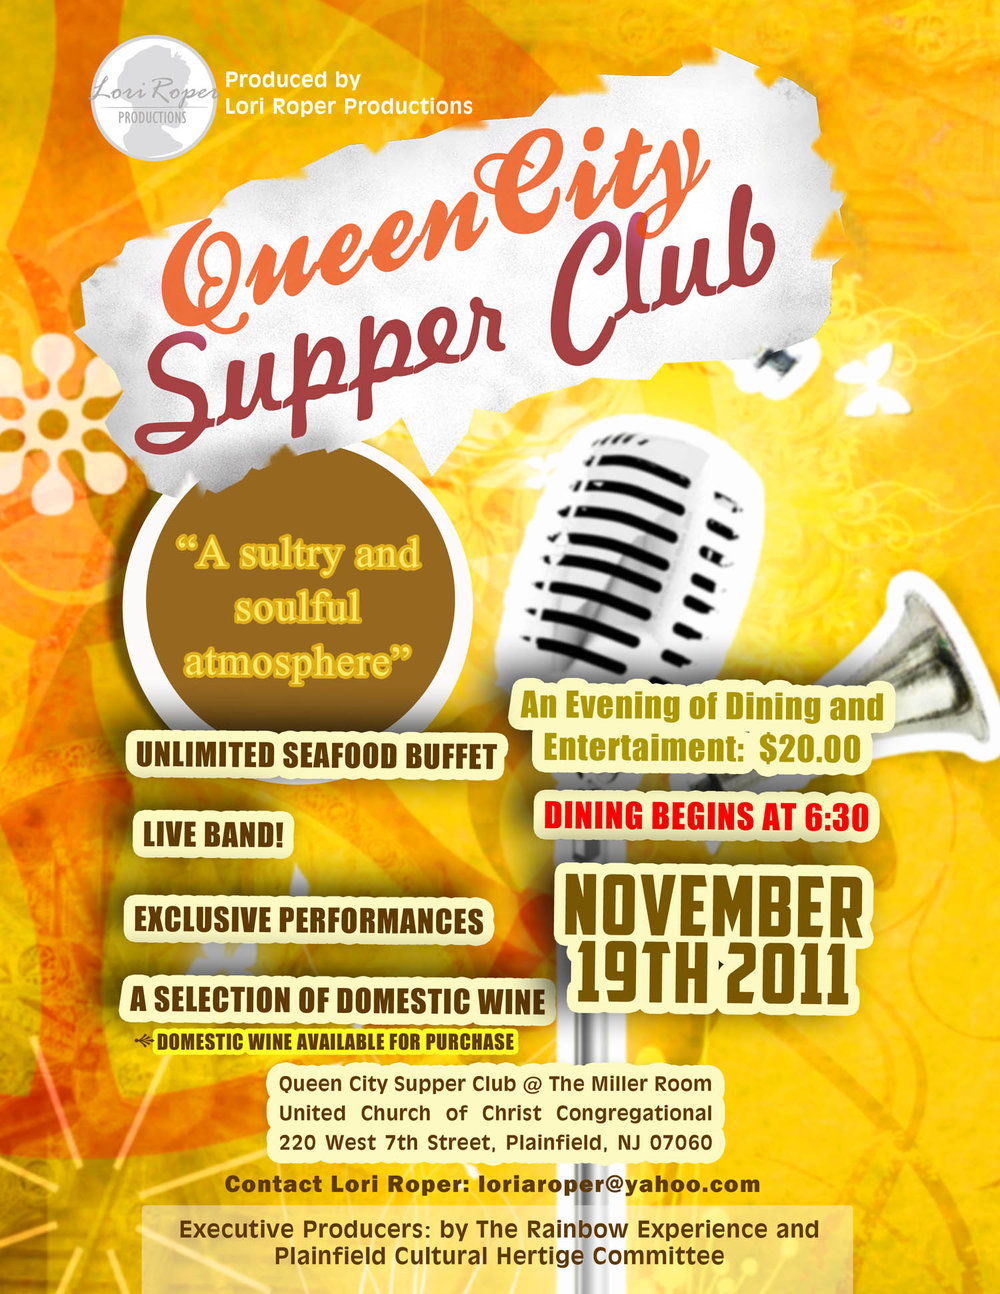 Queen City Supper Club Flyer.jpg